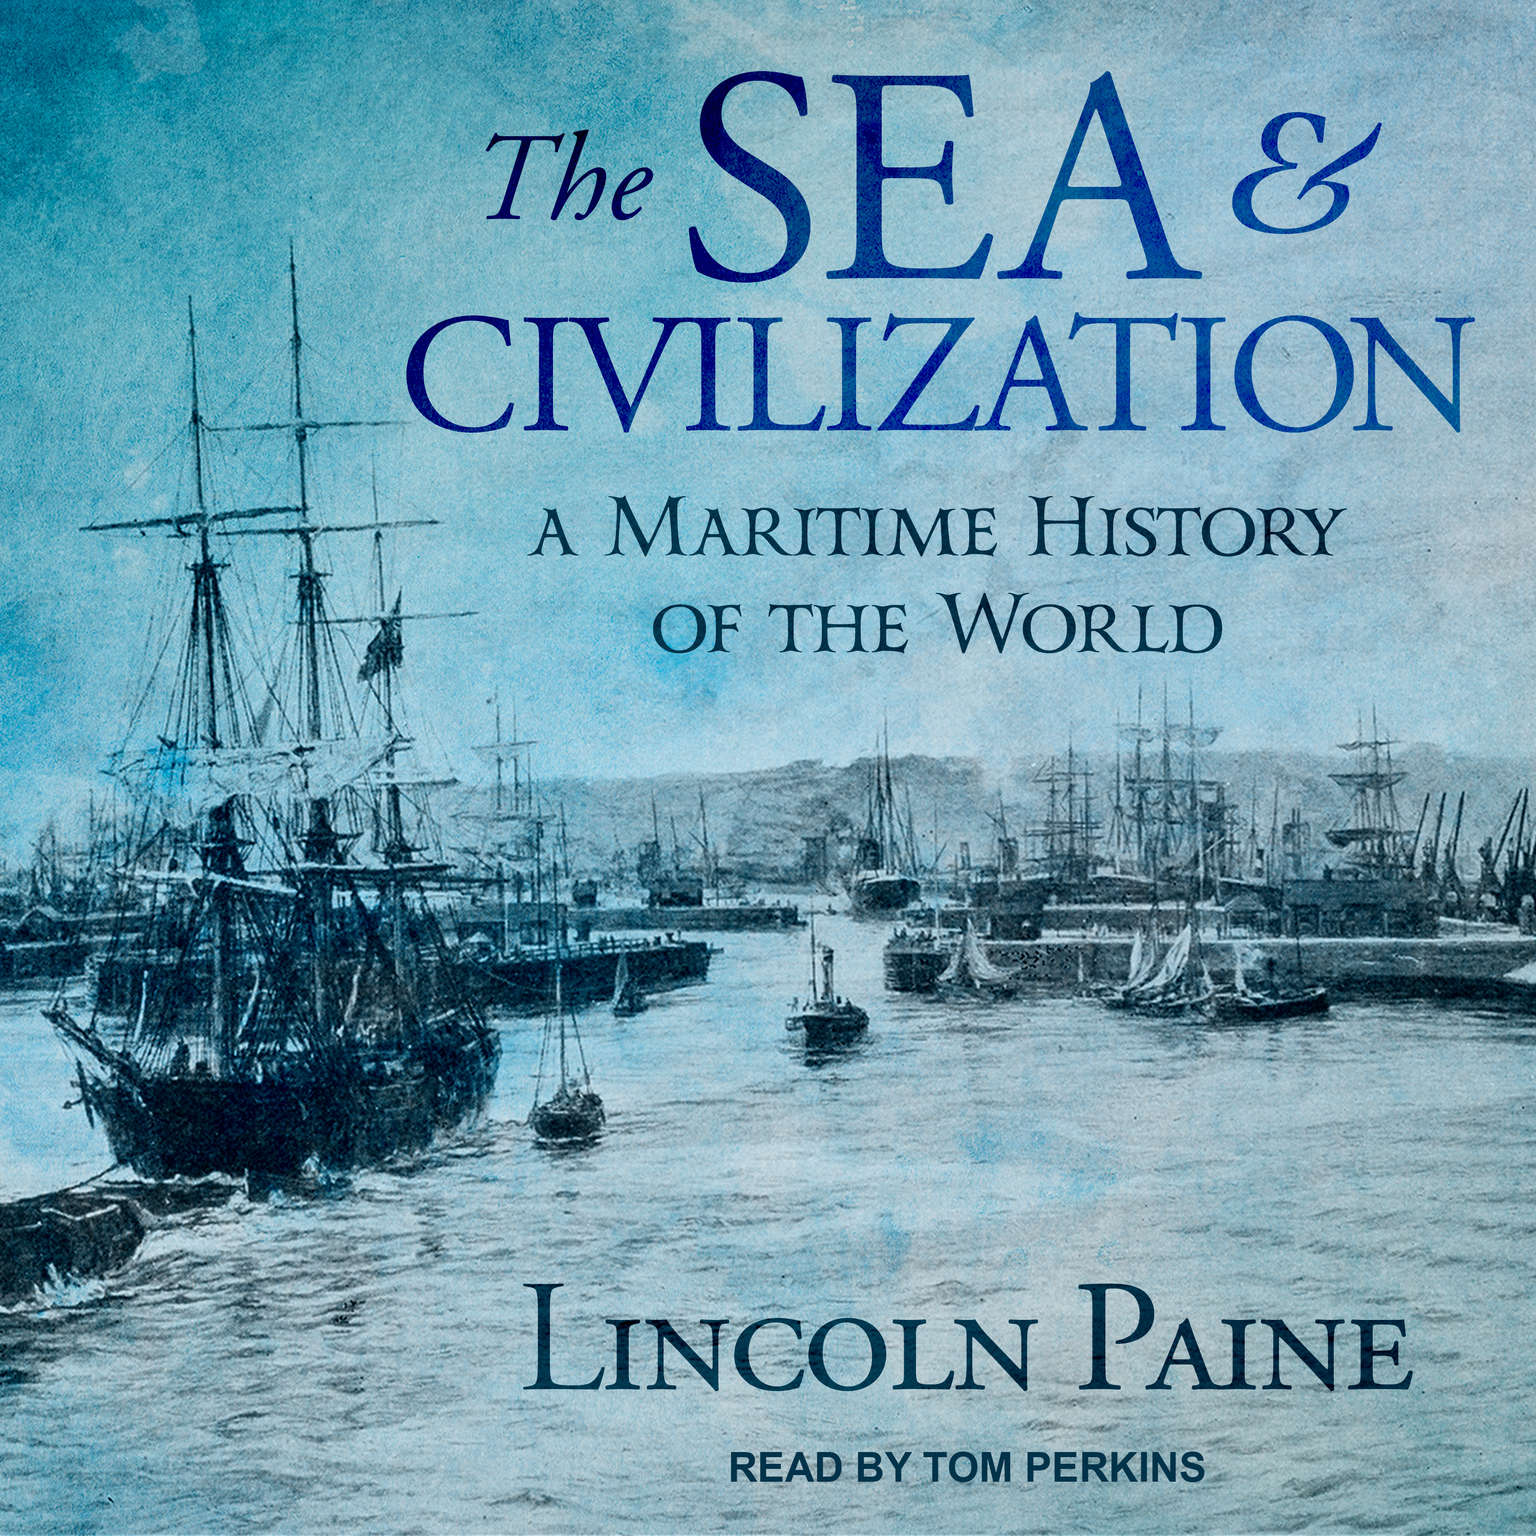 The Sea and Civilization: A Maritime History of the World Audiobook, by Lincoln Paine